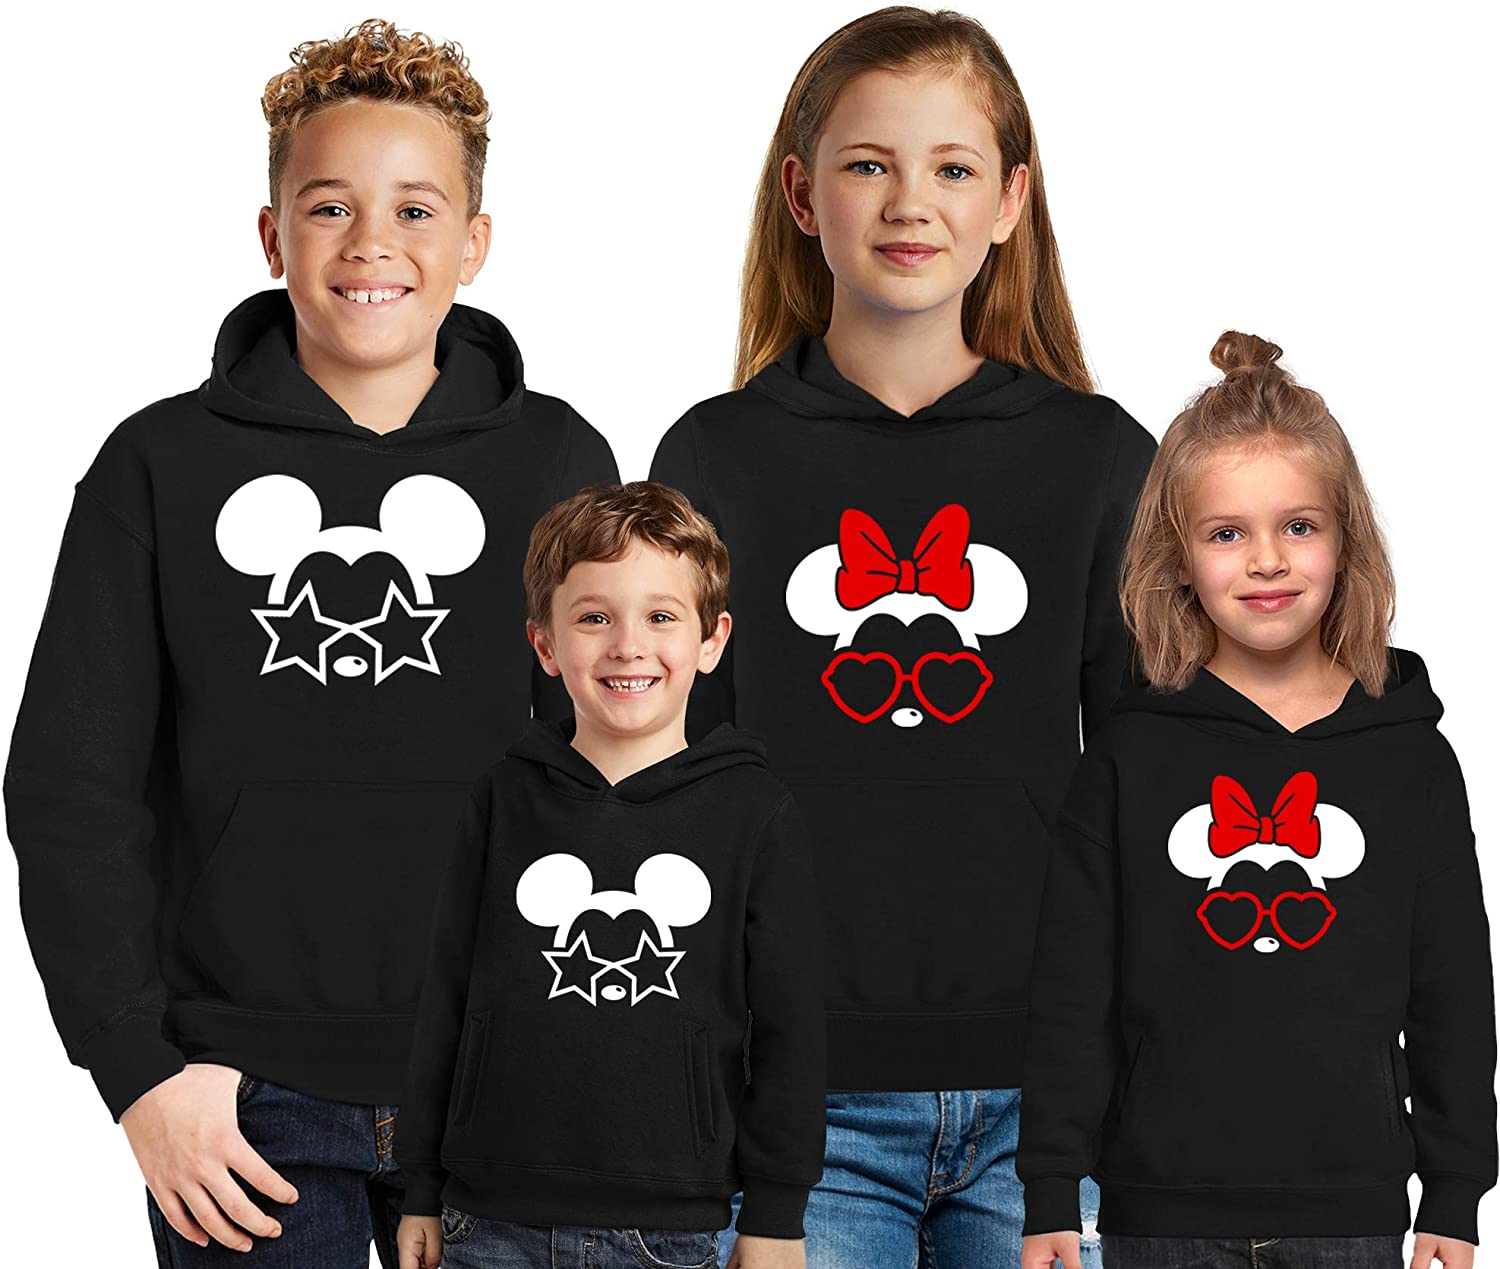 Natural Underwear Family Trip Kids Youth Hoodies 2019#4 Mickey Mouse Minnie Mouse with Stars Hearts Sunglasses Vacation Youth Kids Boys Girls Hooded Sweatshirts Sweaters Black Boys Large